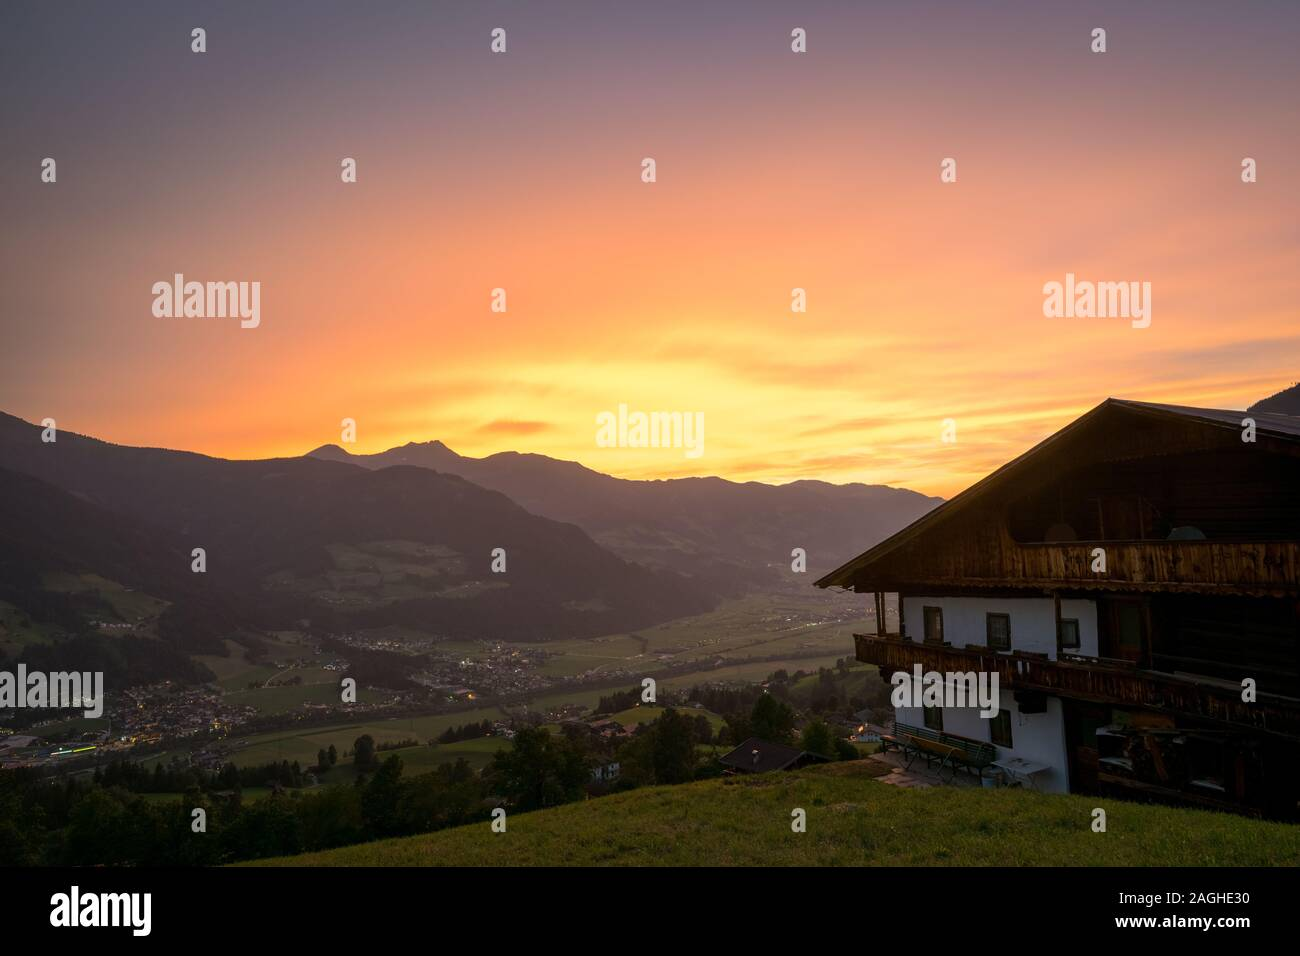 """Beautiful sunset over the valley """"Zillertal"""" in Tirol, Austria. Typical austrian cottage in the foreground. Stock Photo"""